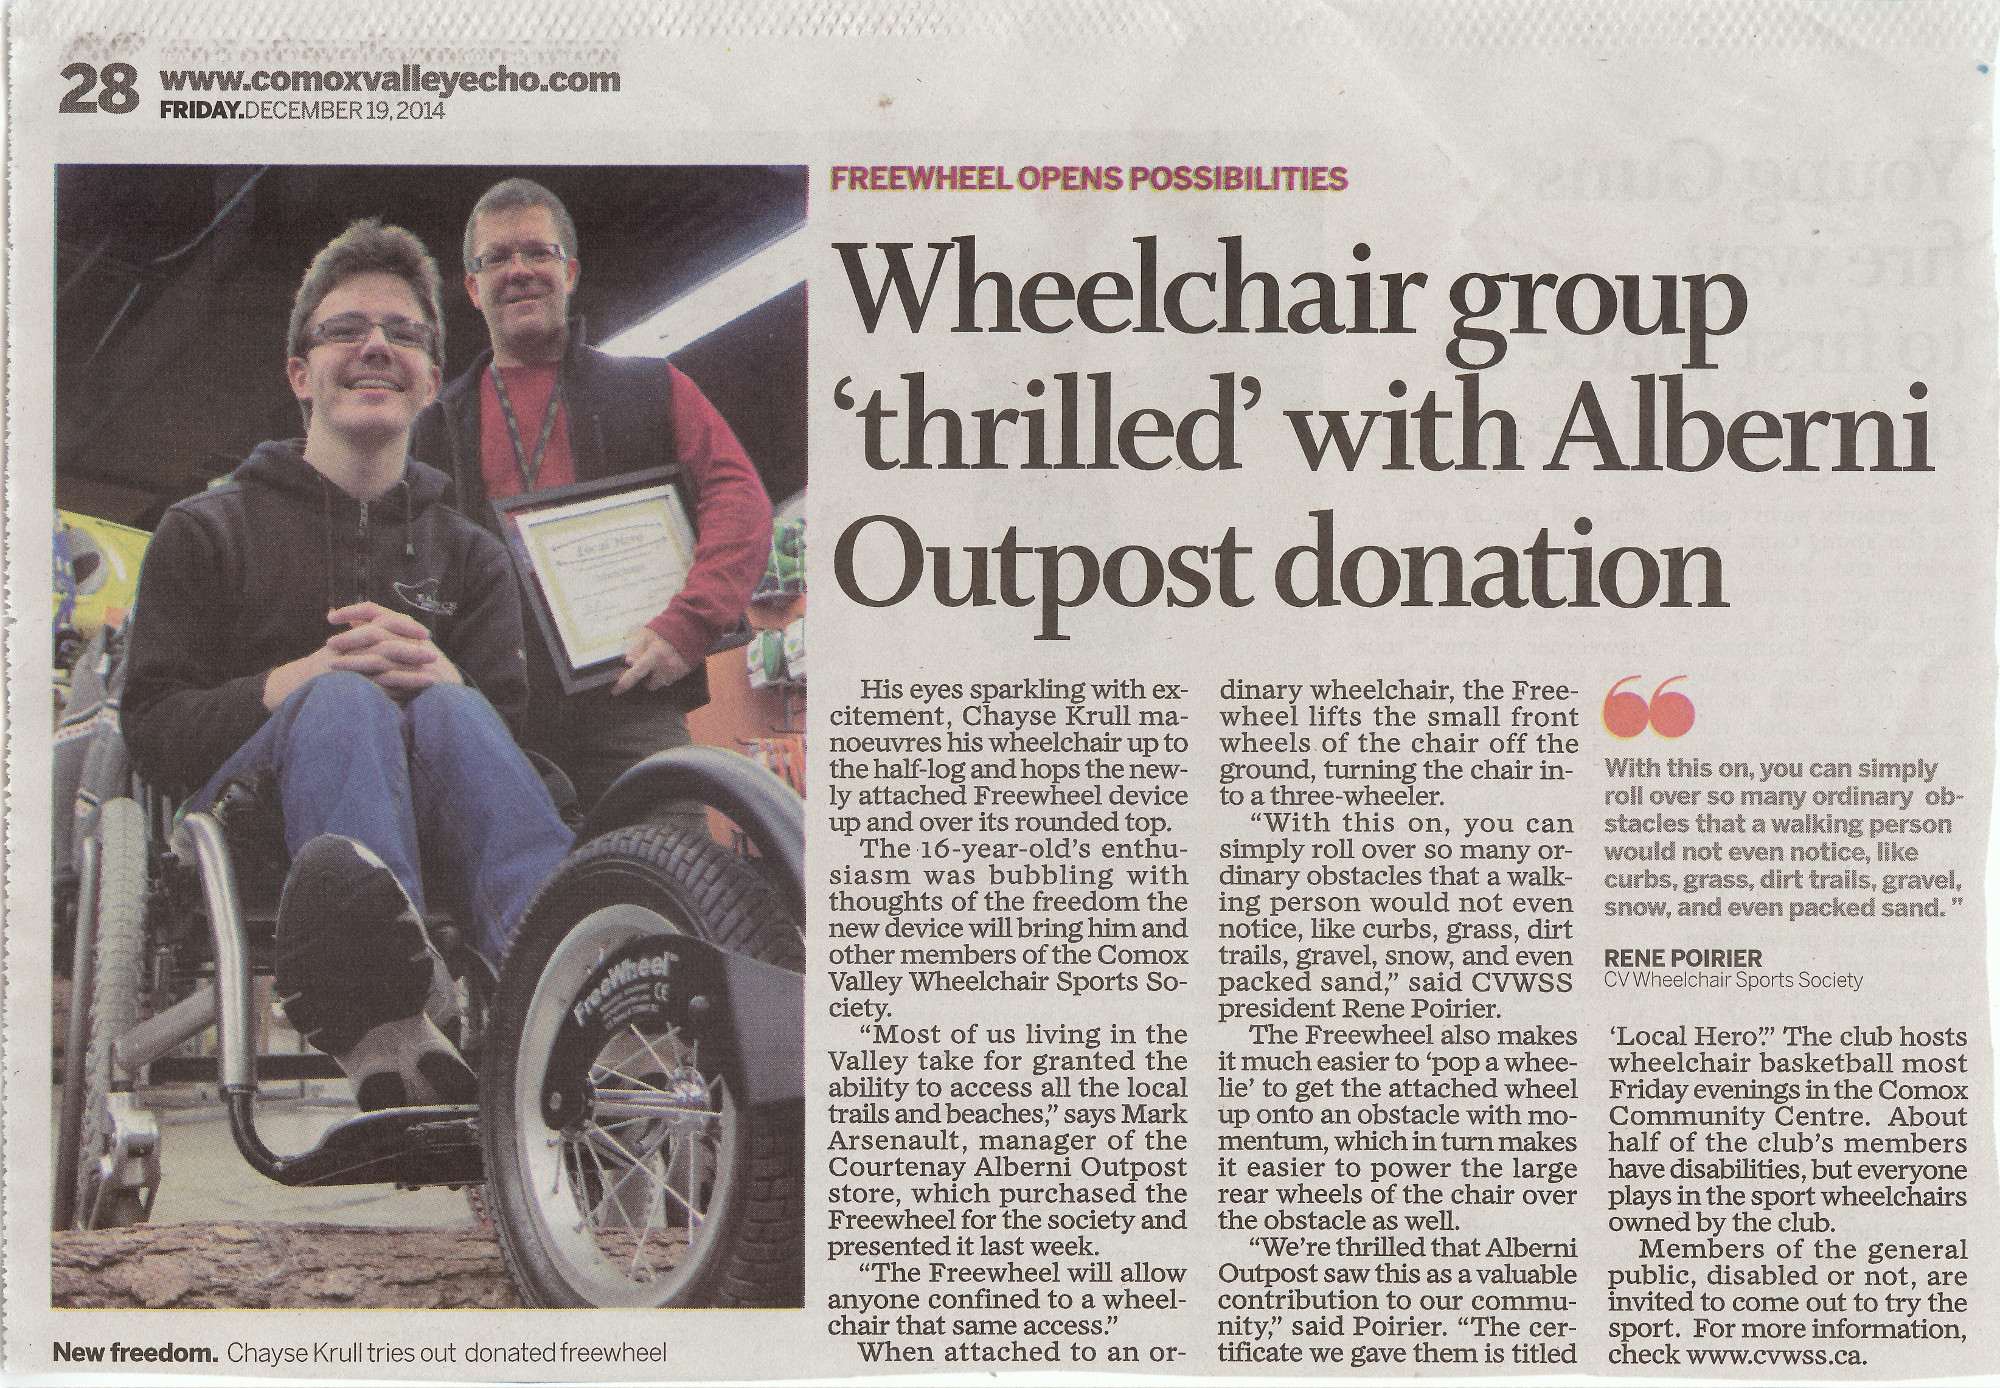 news article regarding the donation from Alberni Outpost